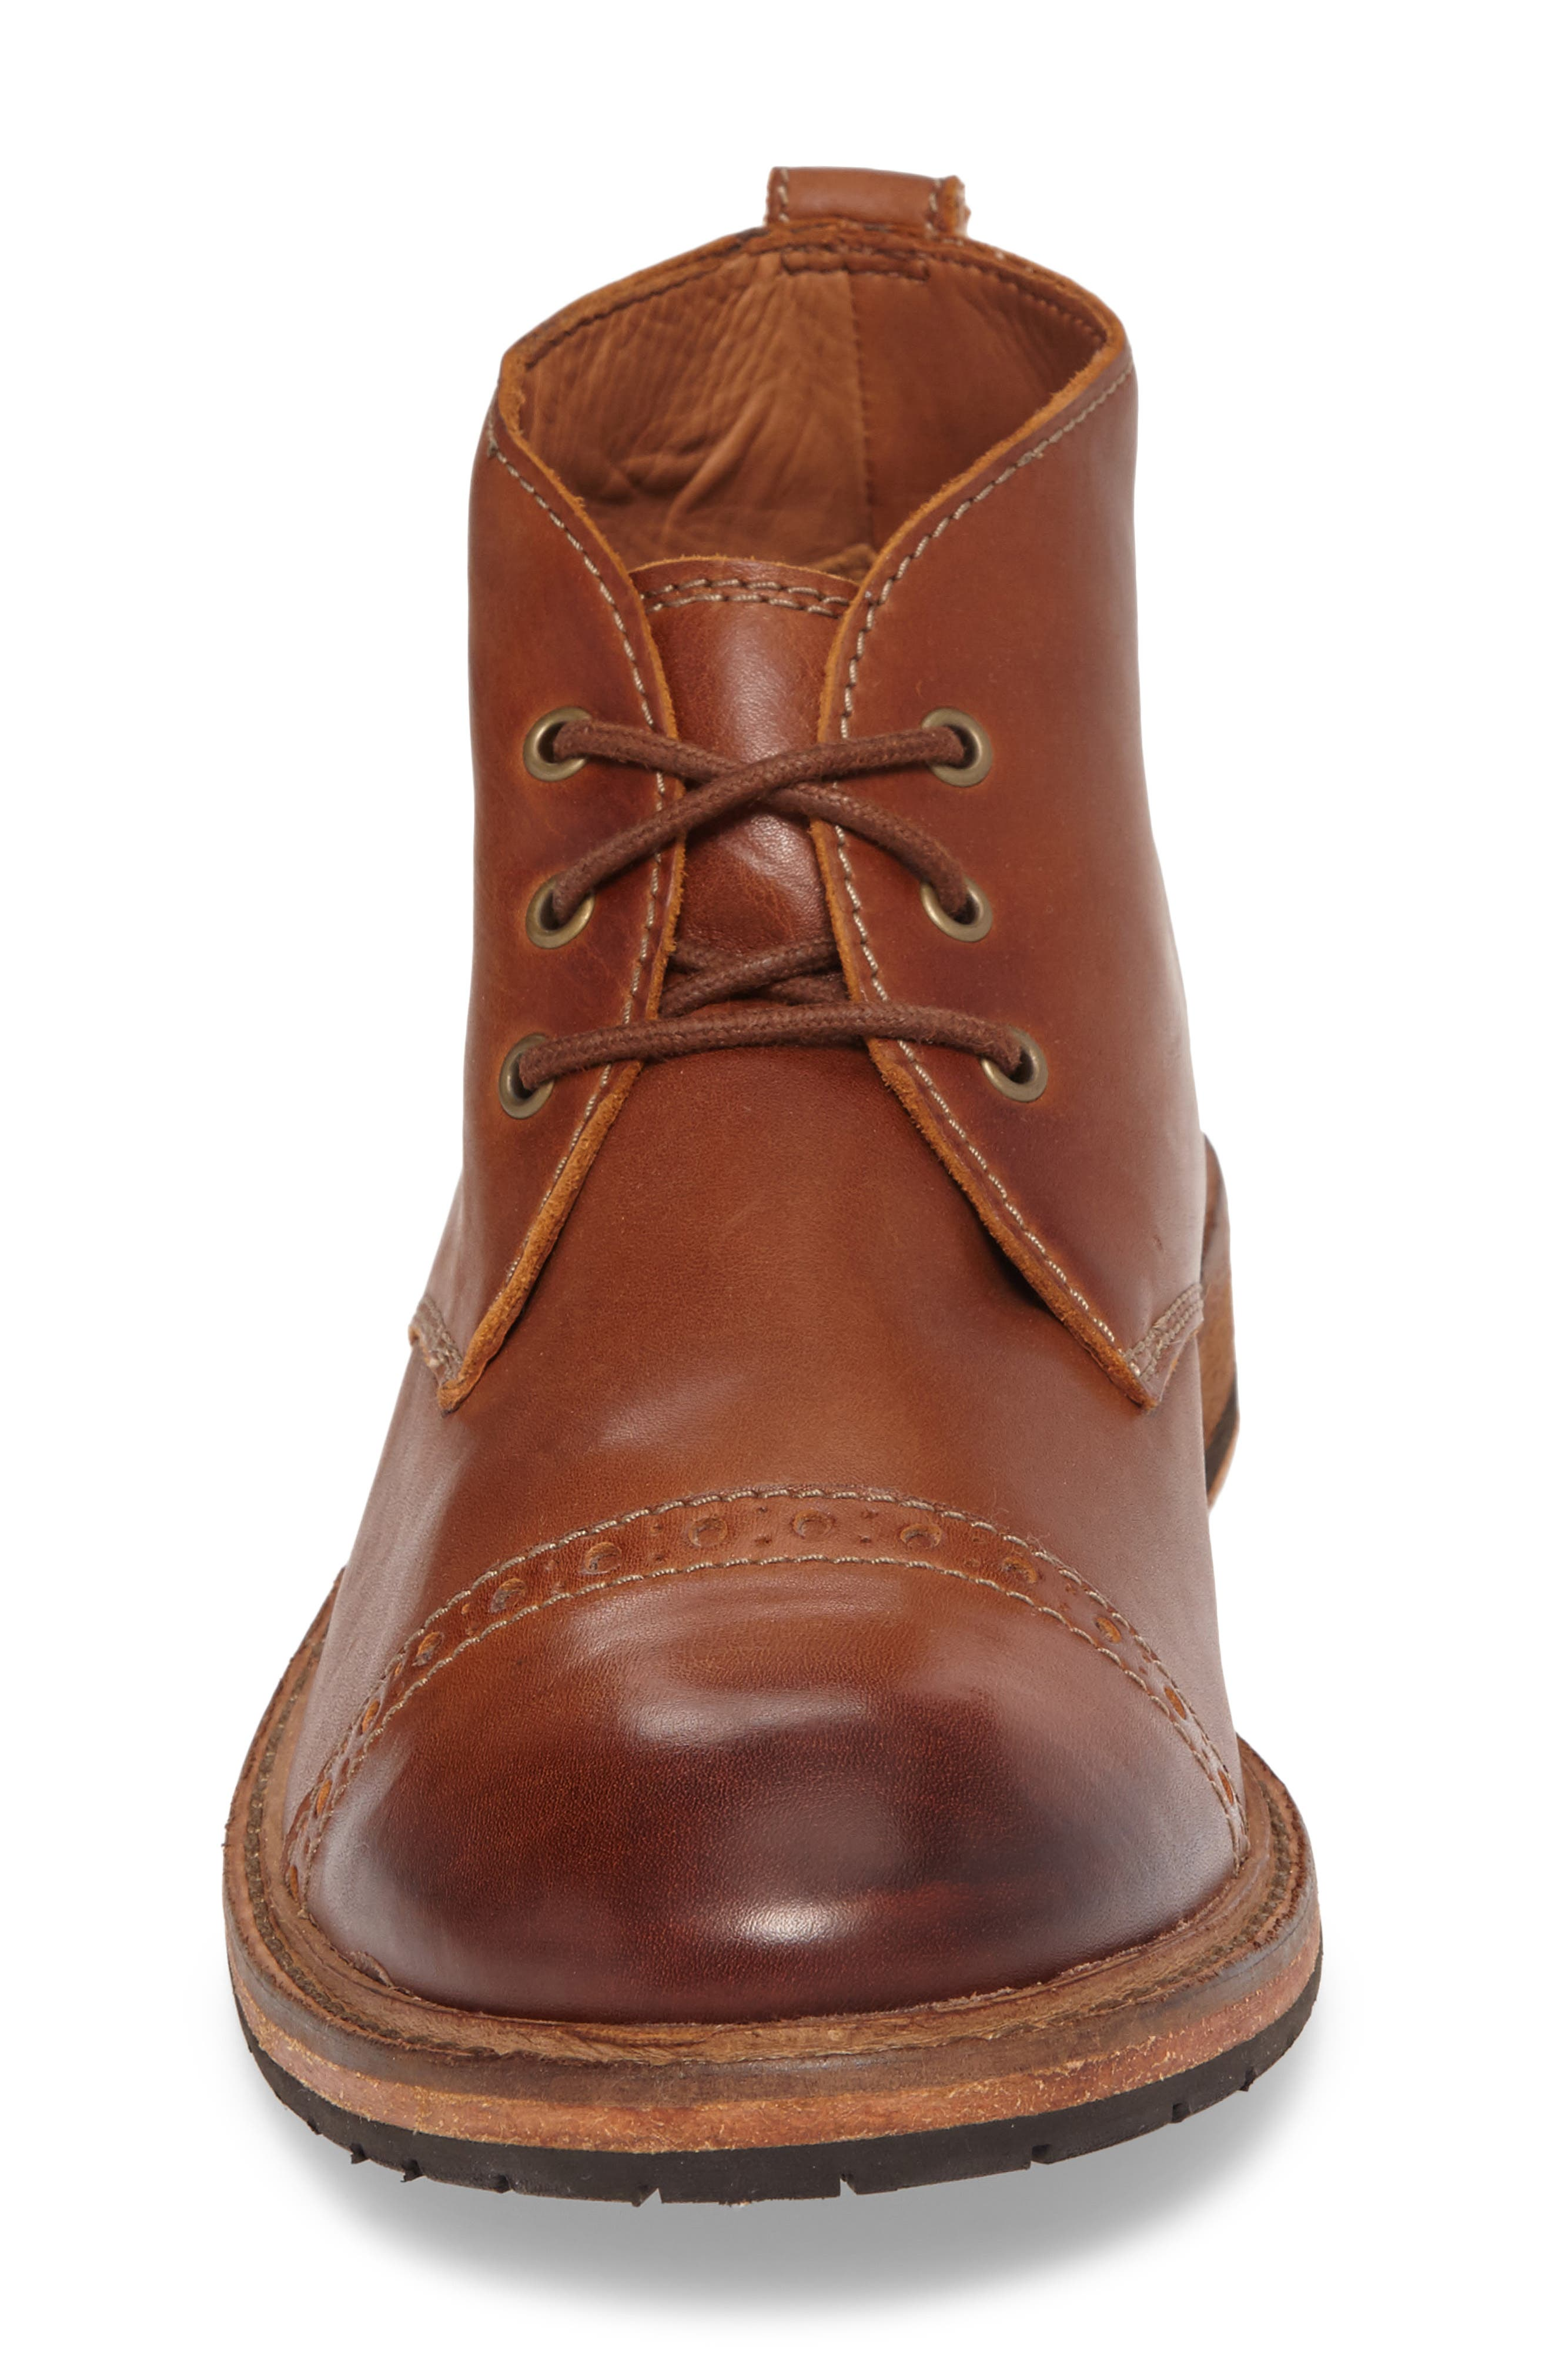 Clarkdale Water Resistant Chukka Boot,                             Alternate thumbnail 4, color,                             Dark Tan Leather